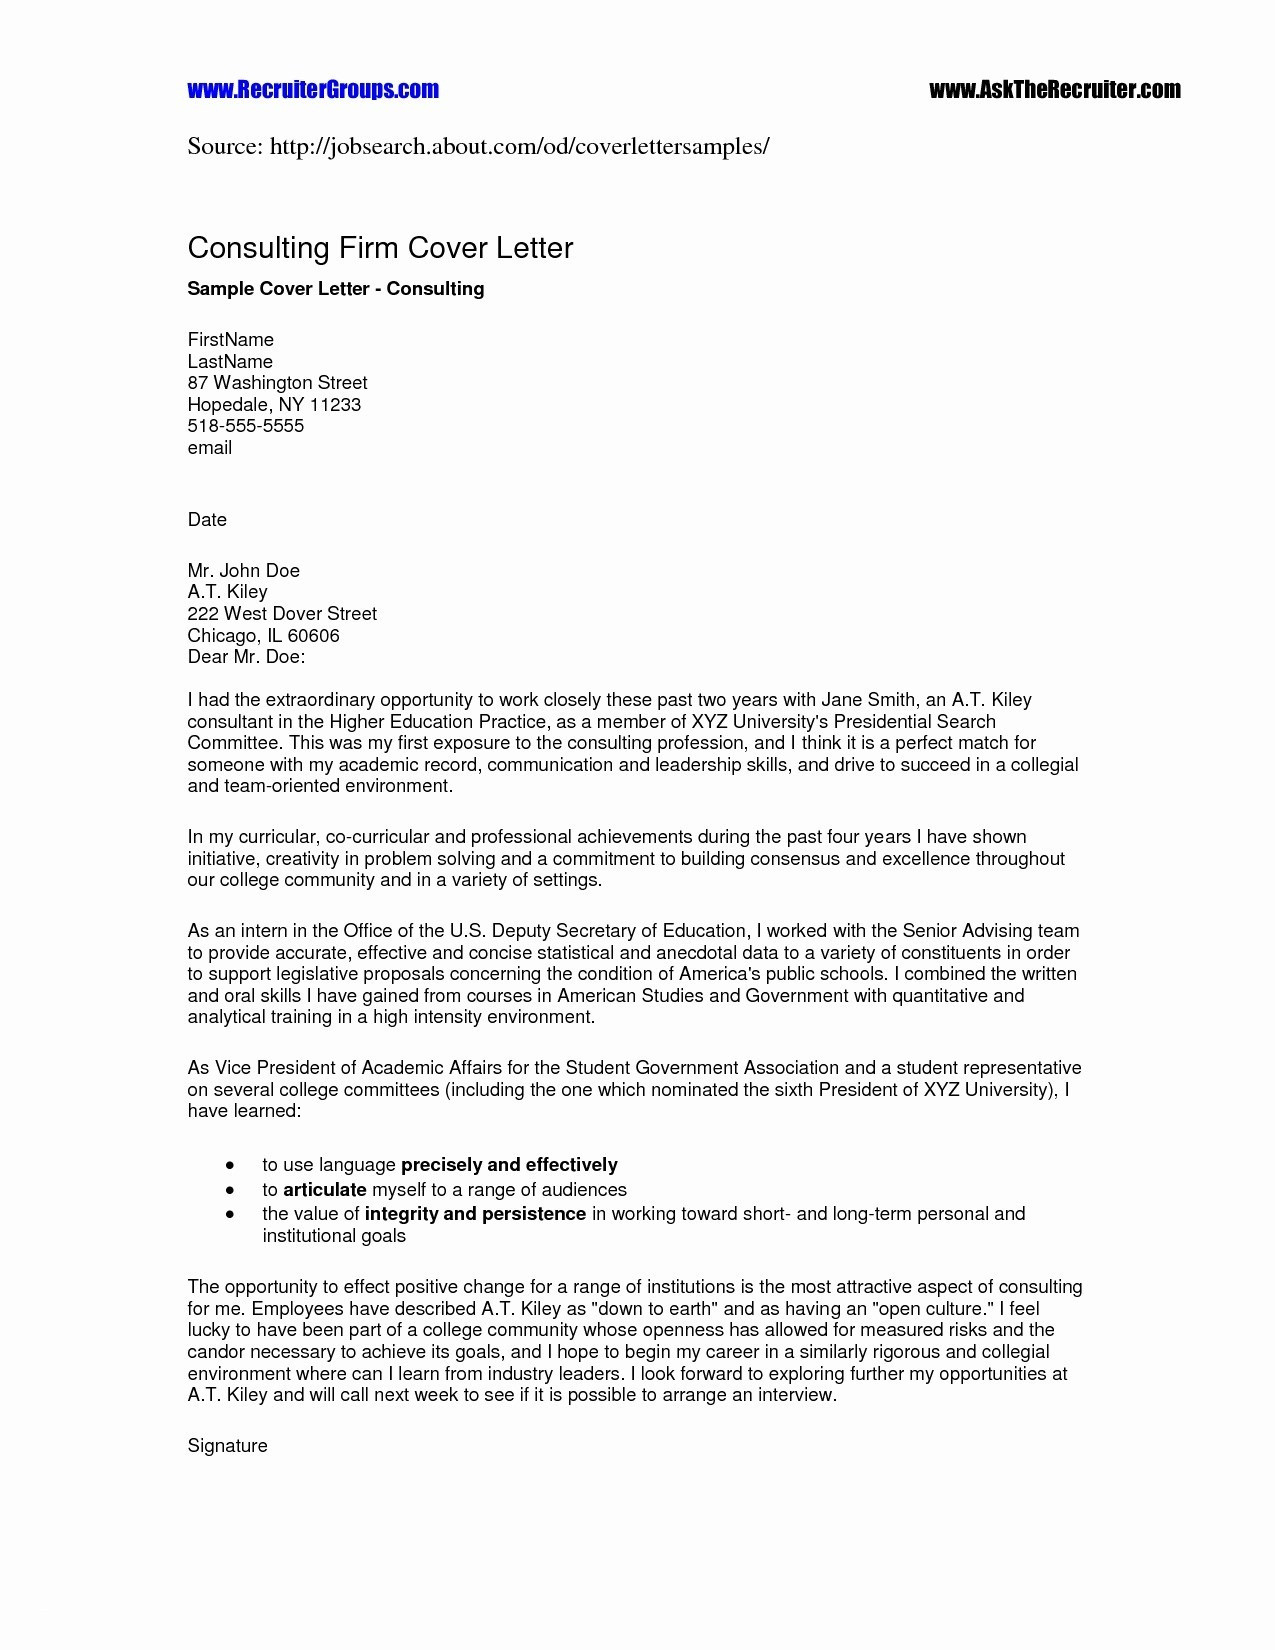 Letter Of Recommendation Resume Template - Resume Template for Letter Re Mendation Cv Templates College